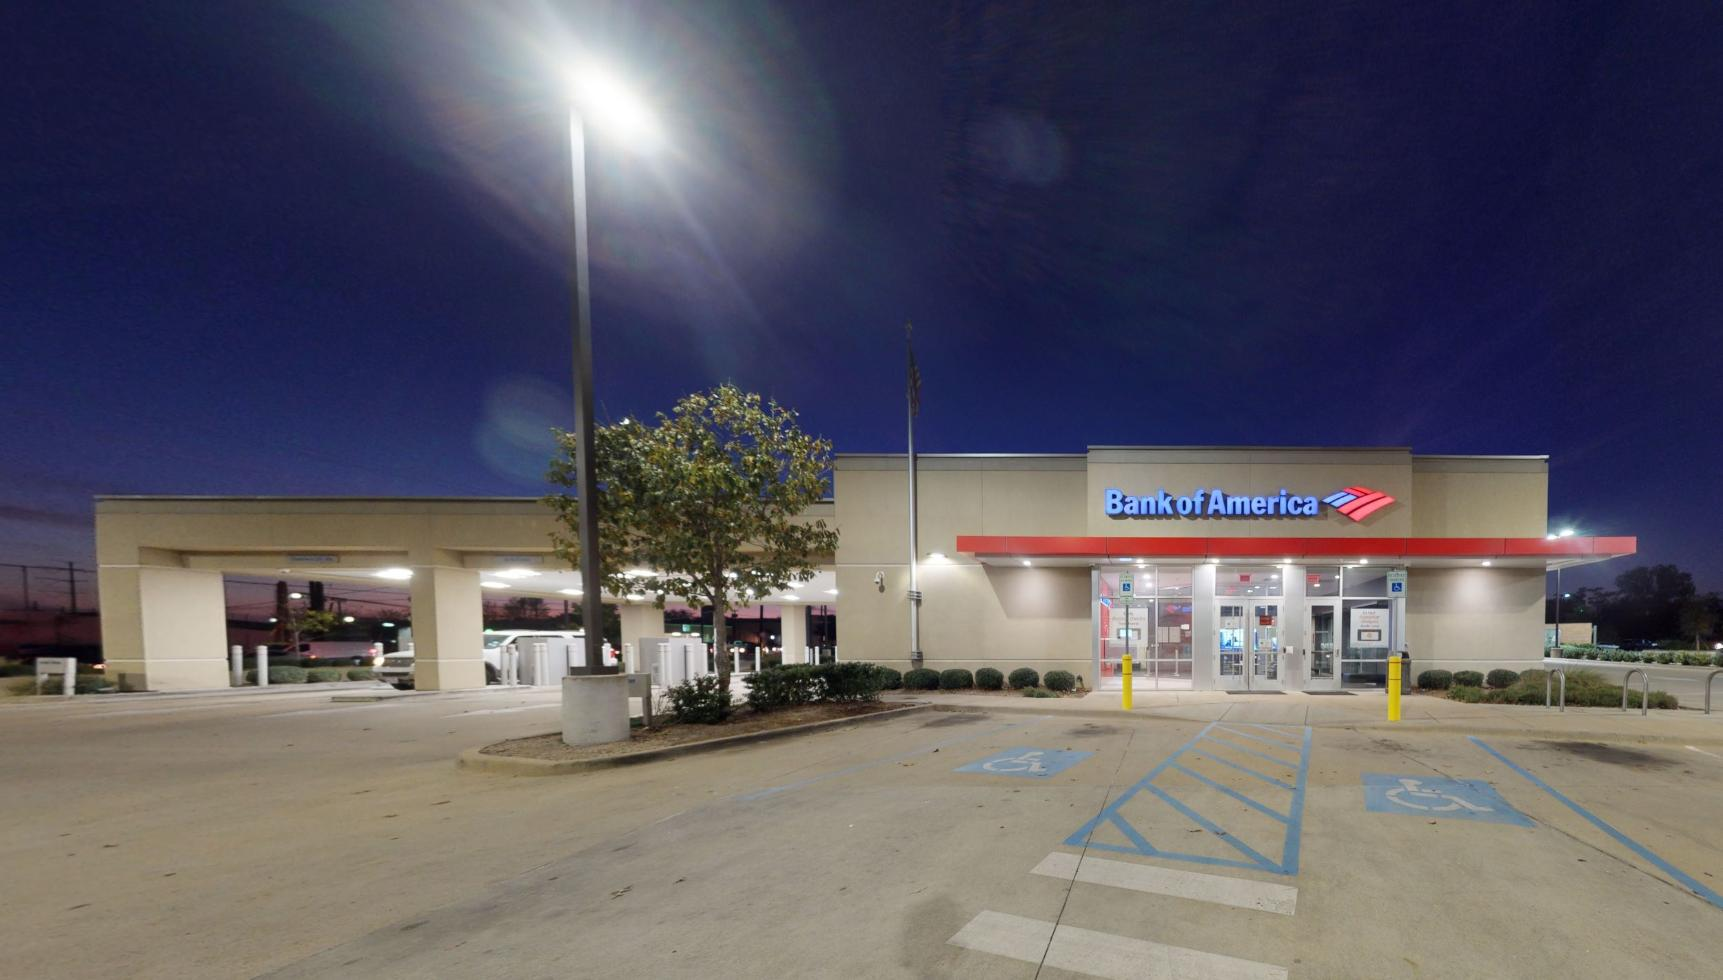 Bank of America financial center with drive-thru ATM | 1913 S Garland Ave, Garland, TX 75040